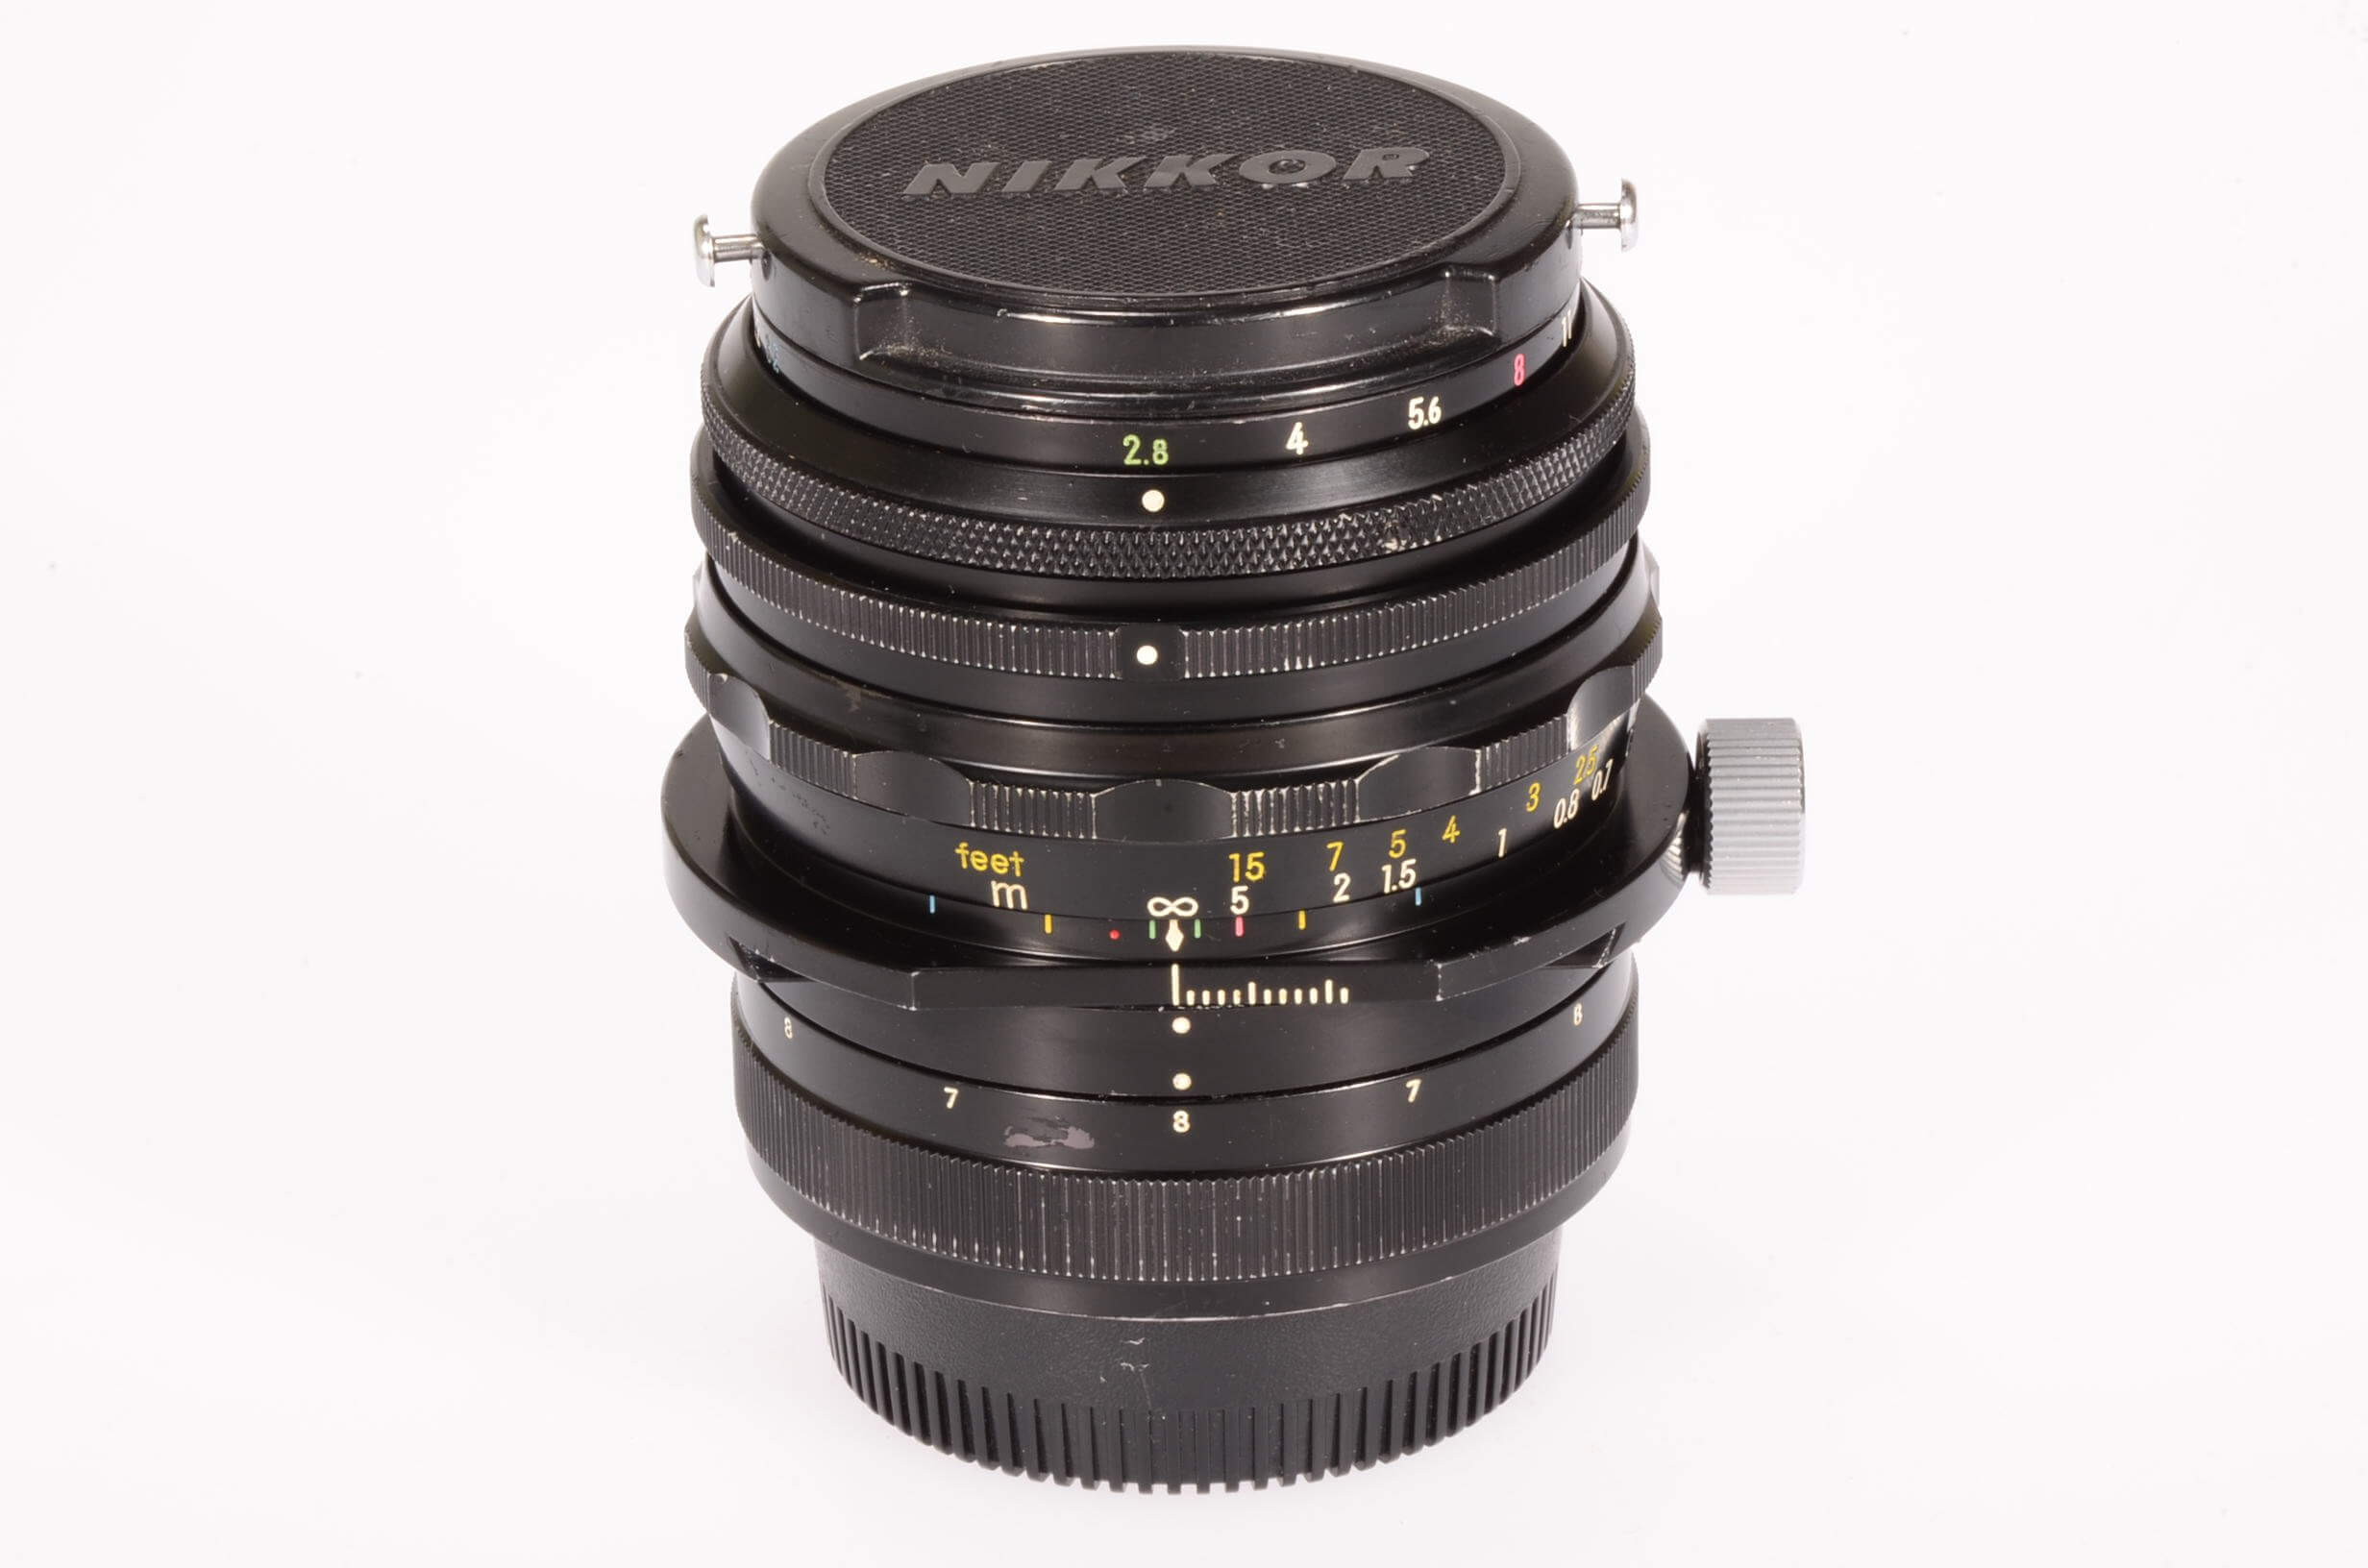 Nikon 35mm f2.8 PC Nikkor, serviced